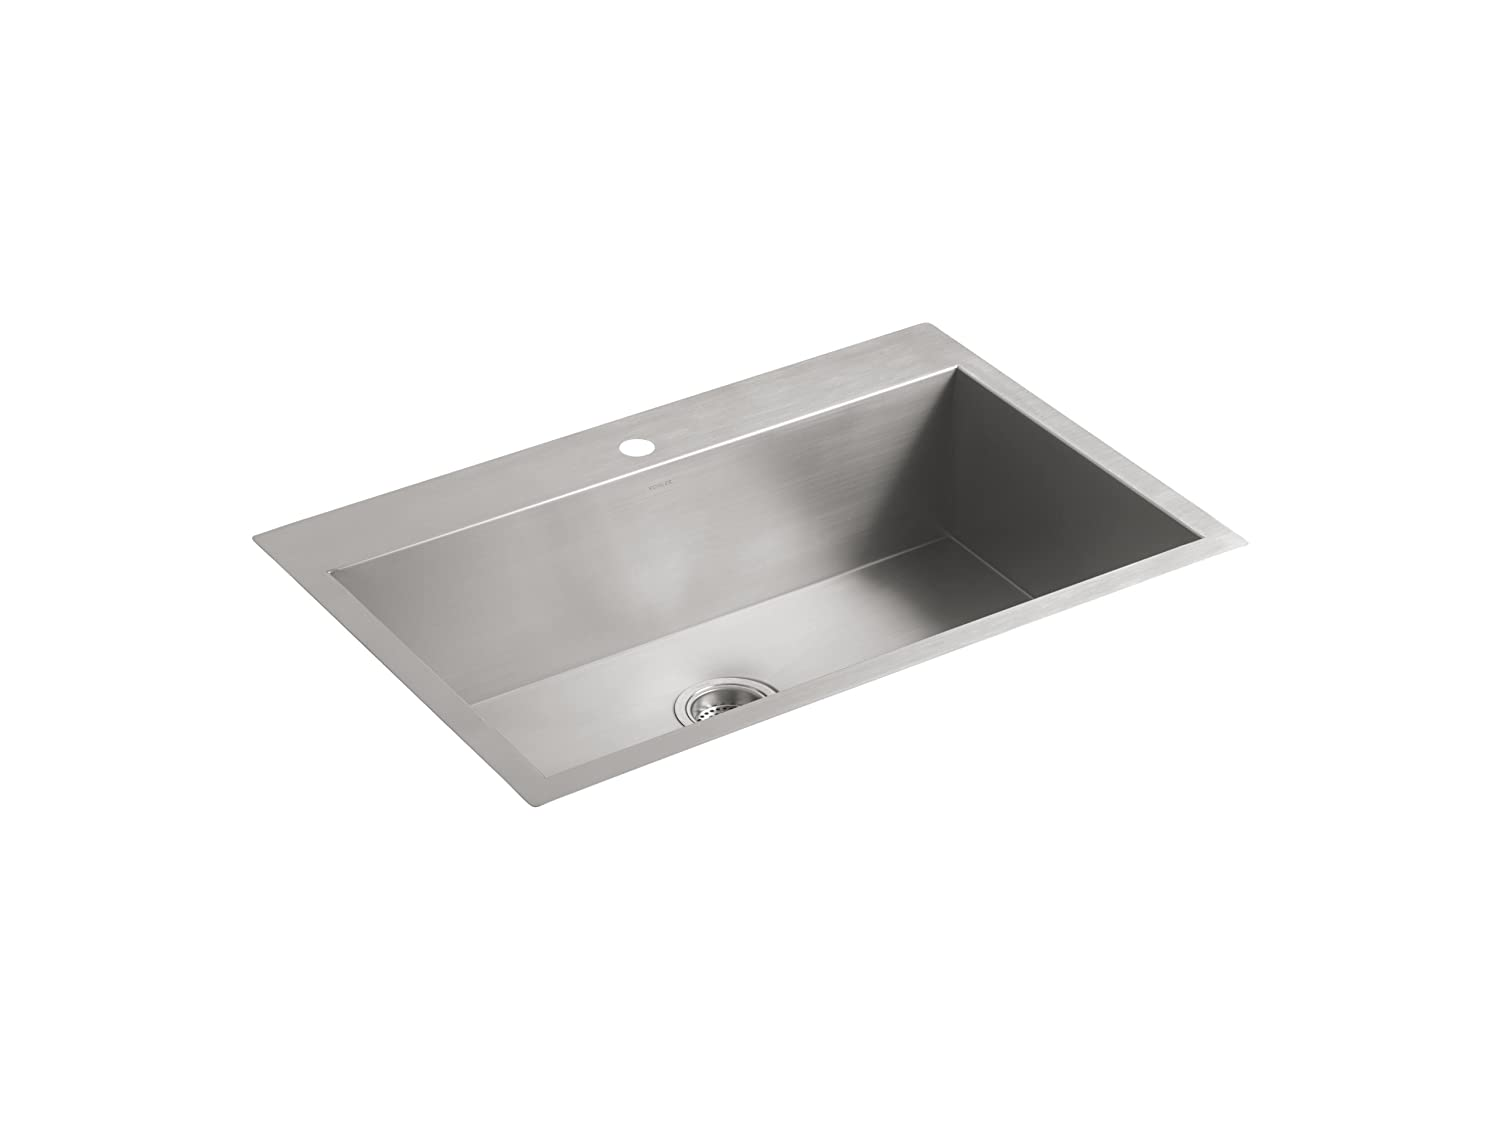 "KOHLER Vault 33"" Single Bowl 18 Gauge Stainless Steel Kitchen Sink with Single Faucet Hole K-3821-1-NA Drop-in or Undermount Installation, 9 inch Bowl"